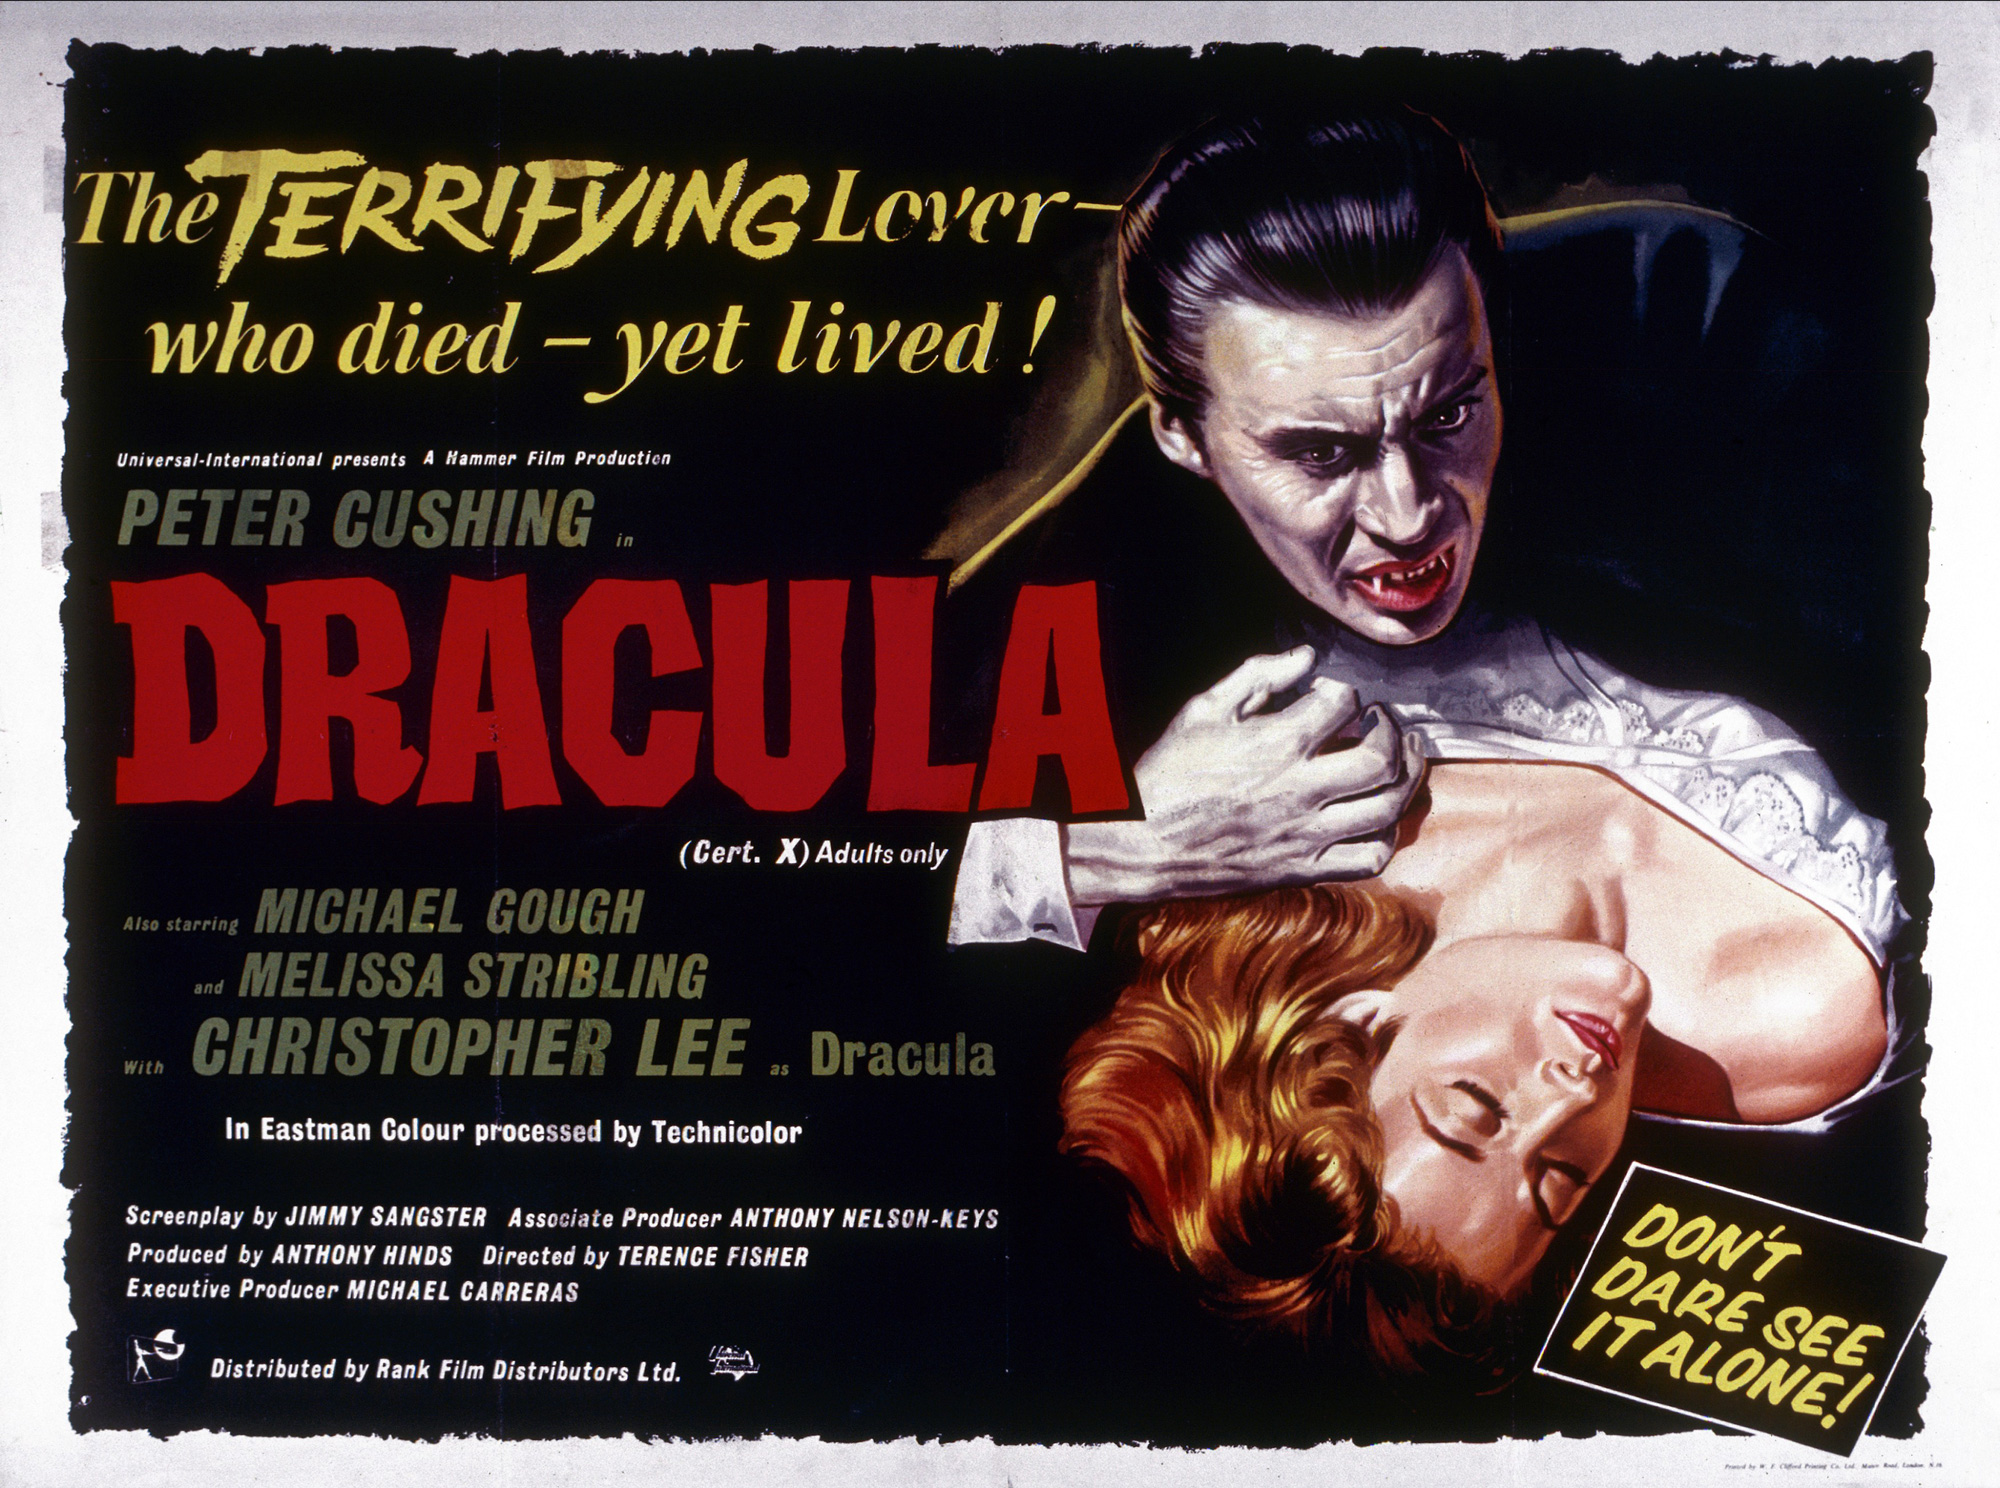 Poster promoting the 1958 film adaptation of Dracula